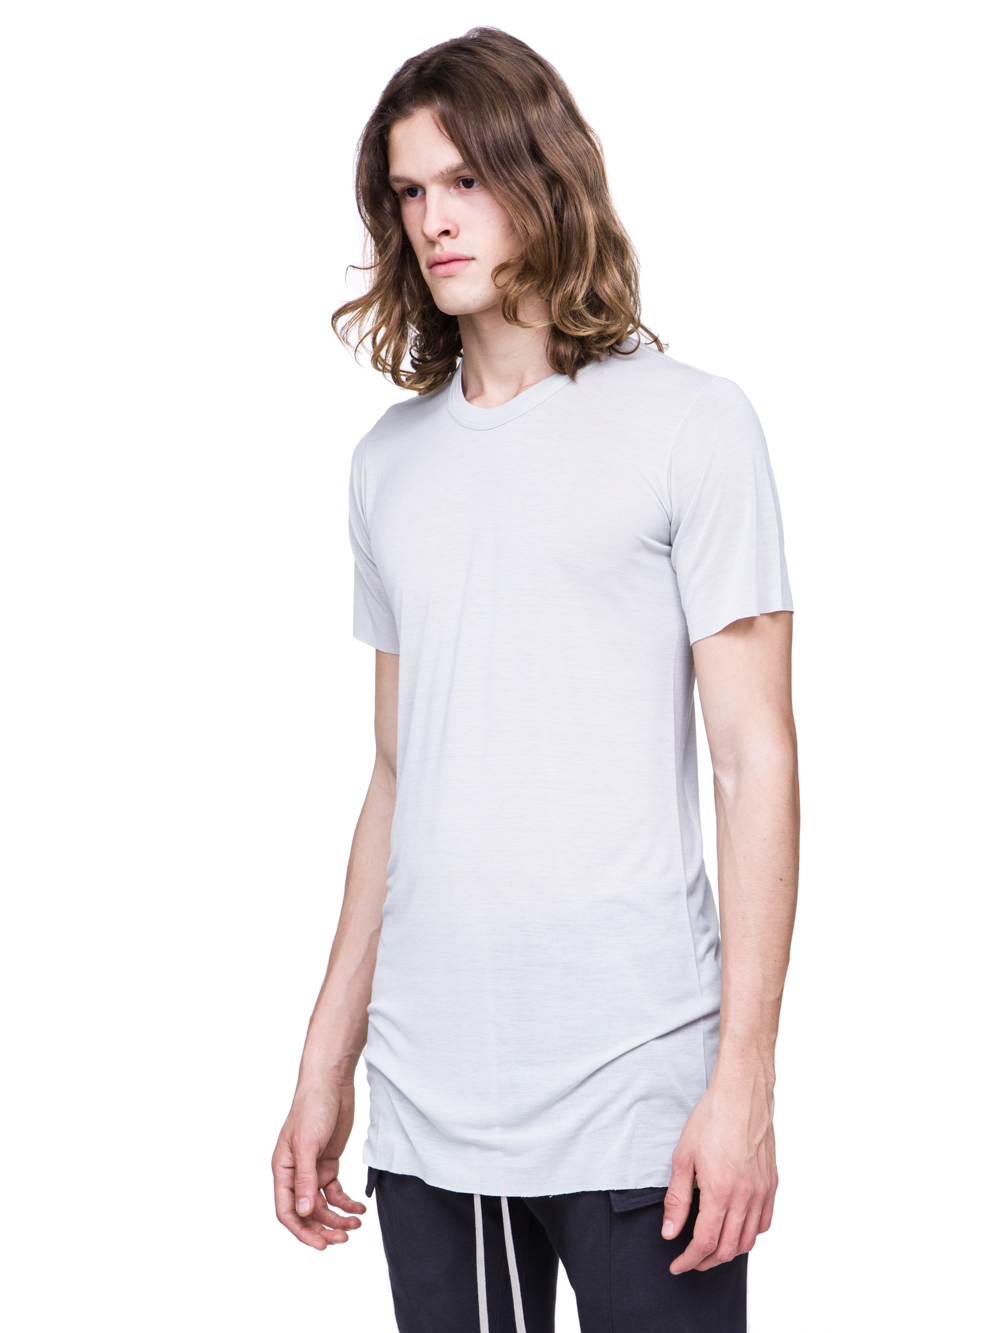 RICK OWENS SS19 BABEL BASIC SHORTSLEEVE TEE IN OYSTER LIGHT GREY VISCOSE SILK JERSEY